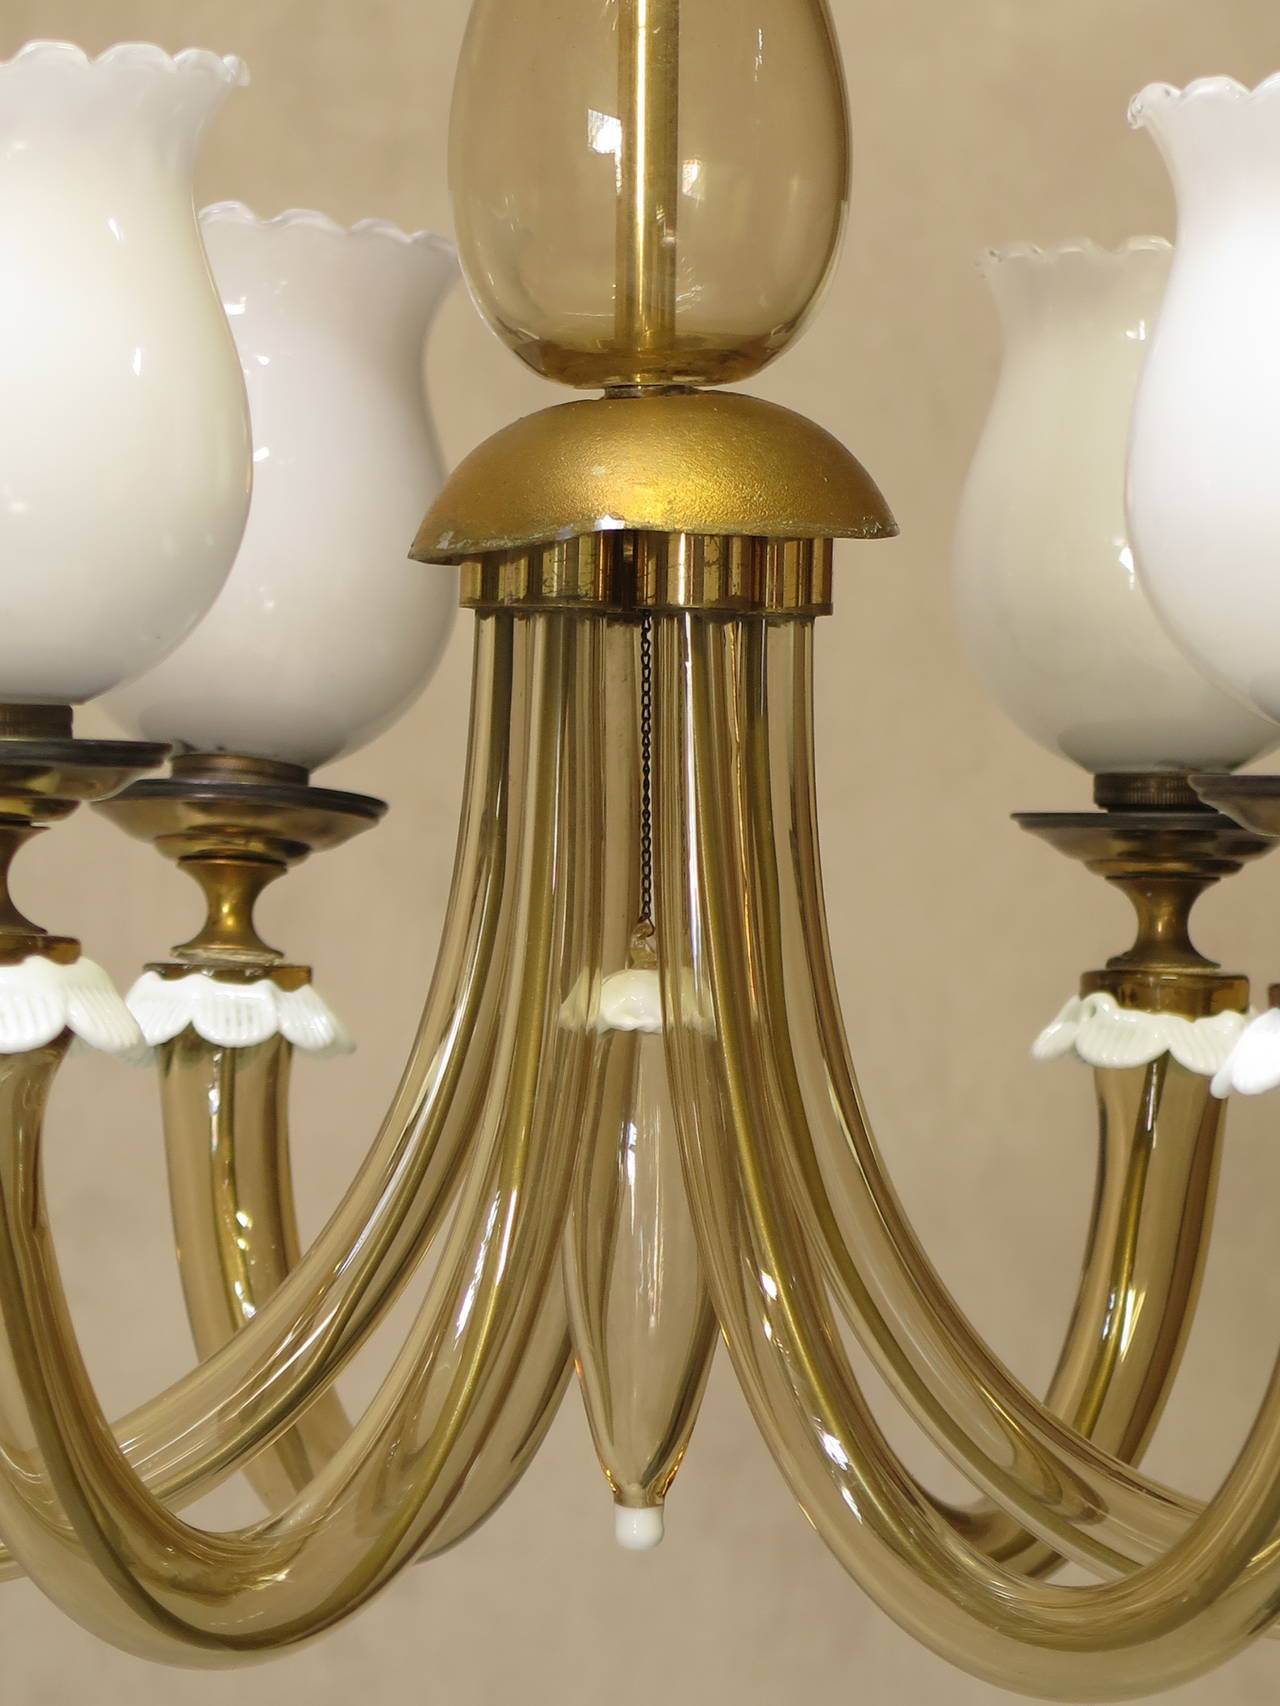 Amber and Milk Glass Murano Chandelier 1940s For Sale at